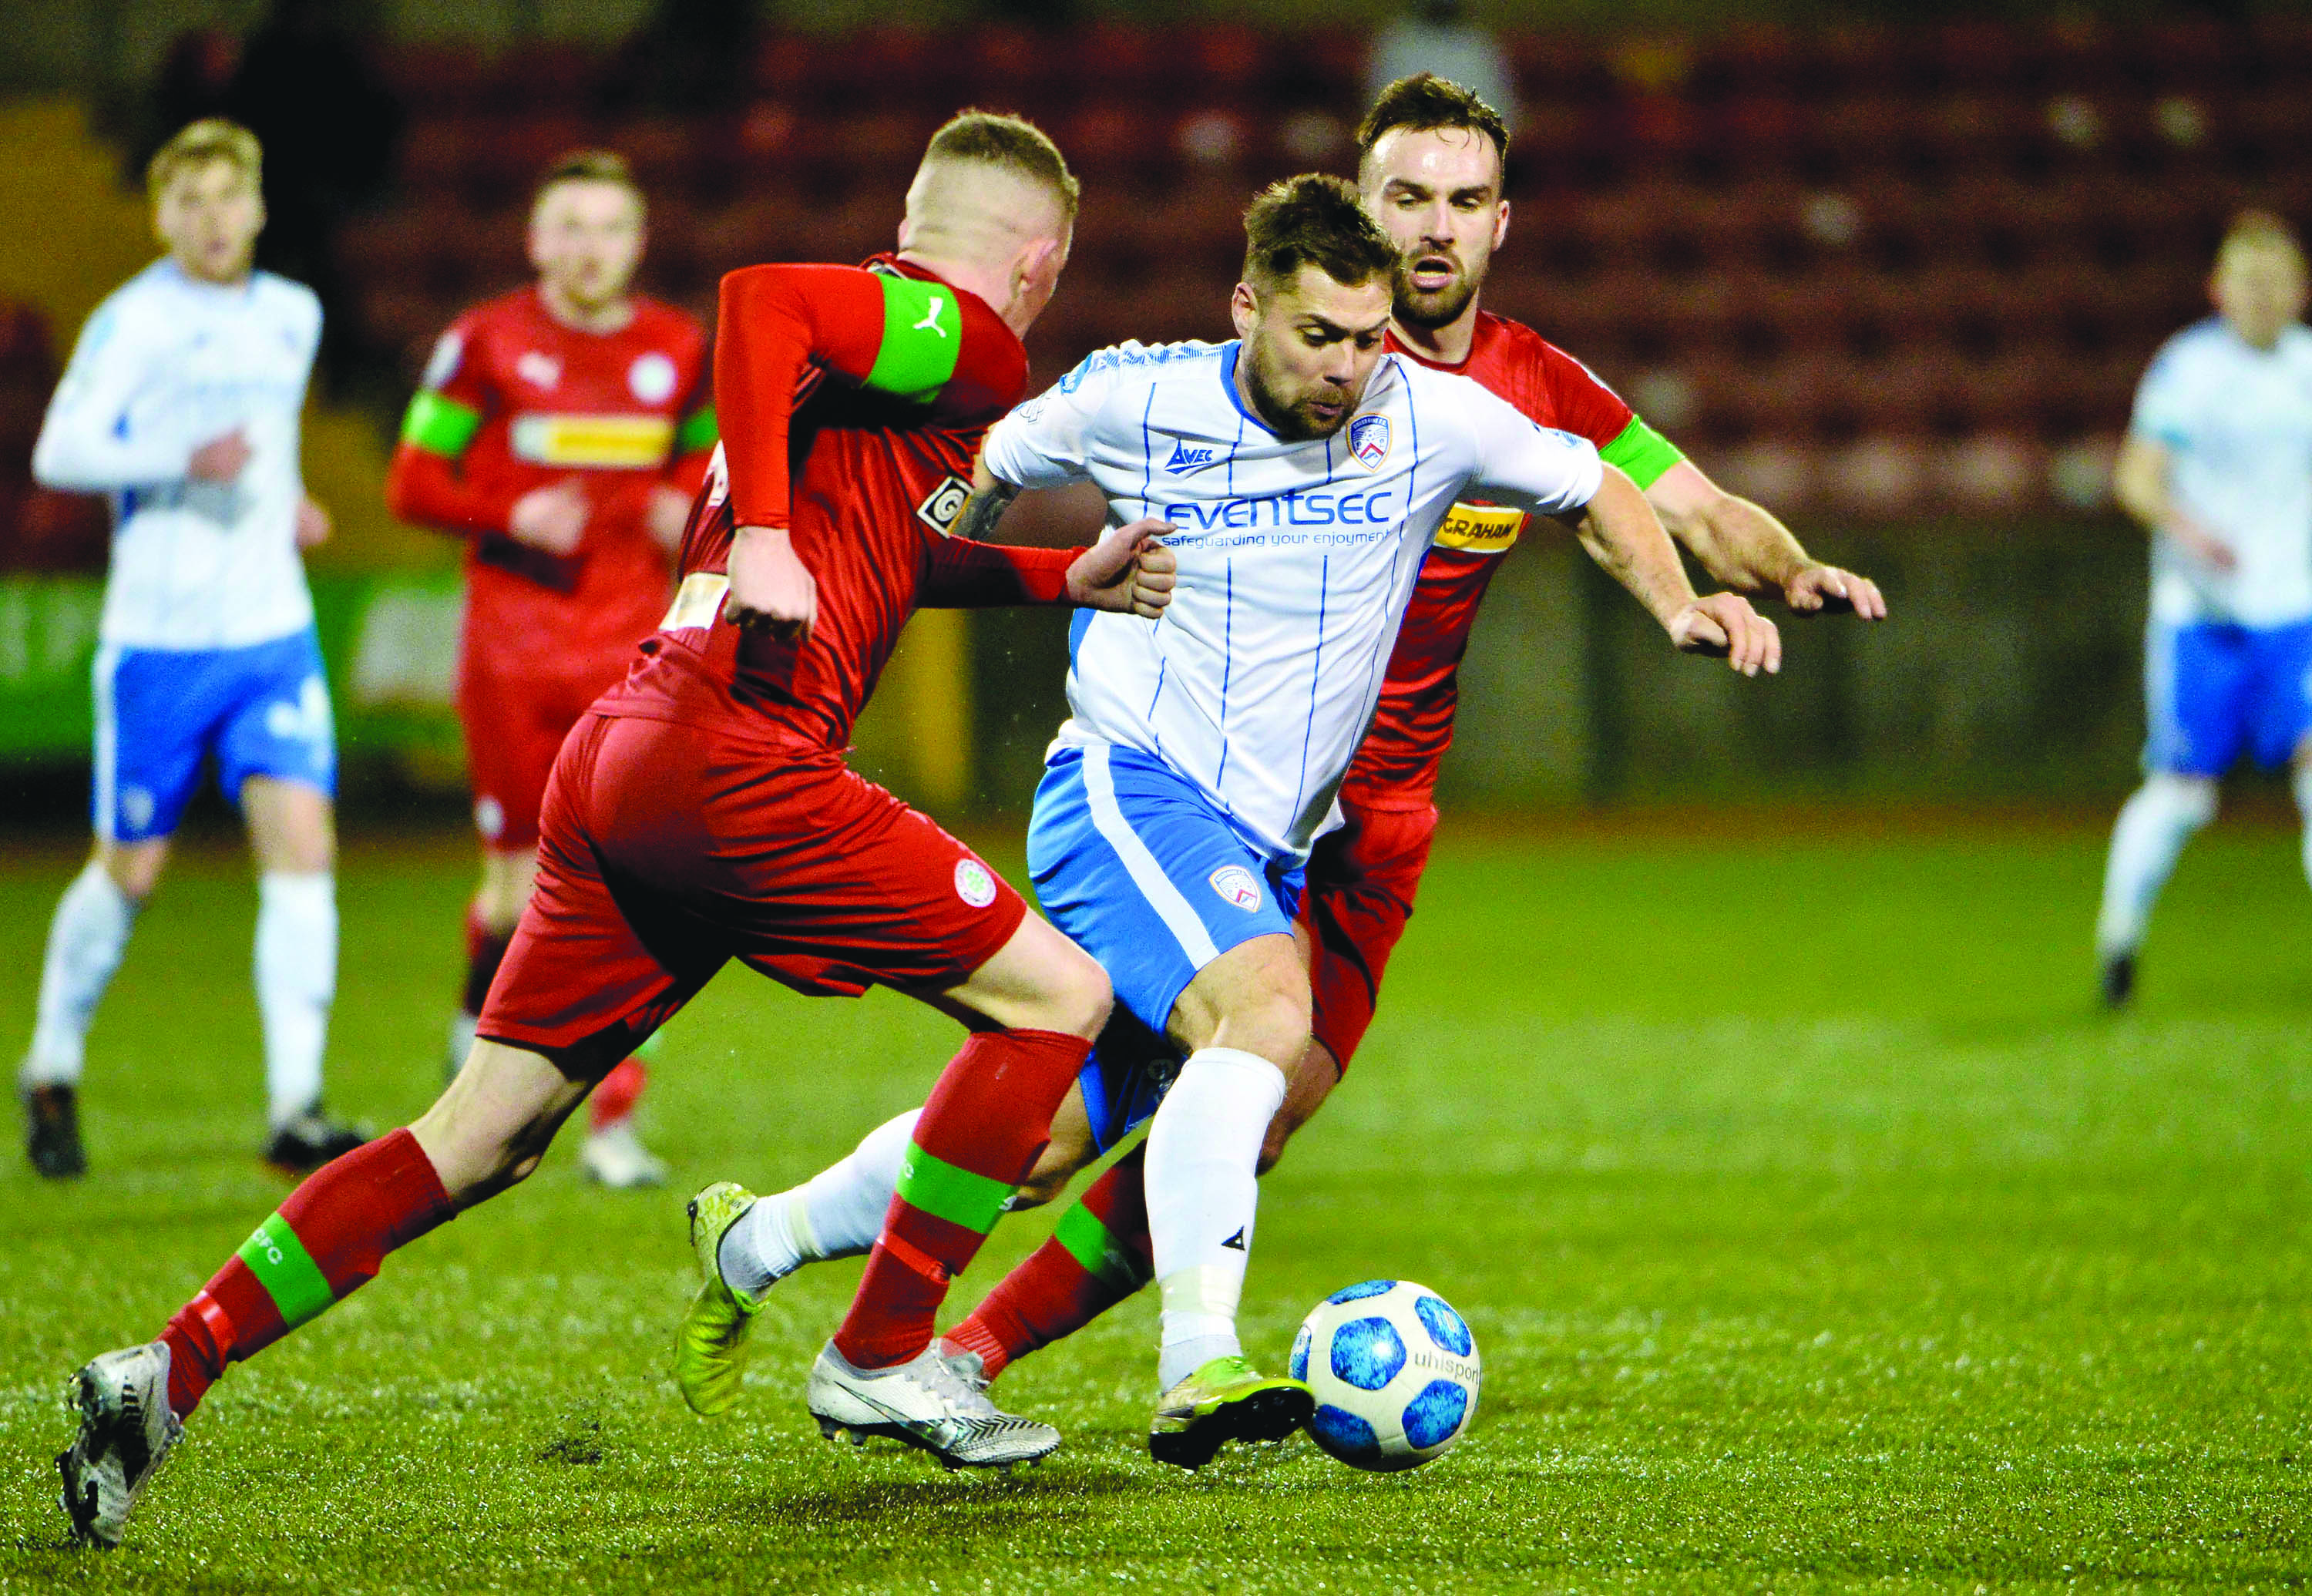 Cliftonville manager Paddy McLaughlin was left disappointed as his team fell to their sixth league defeat of the season on Saturday against Coleraine